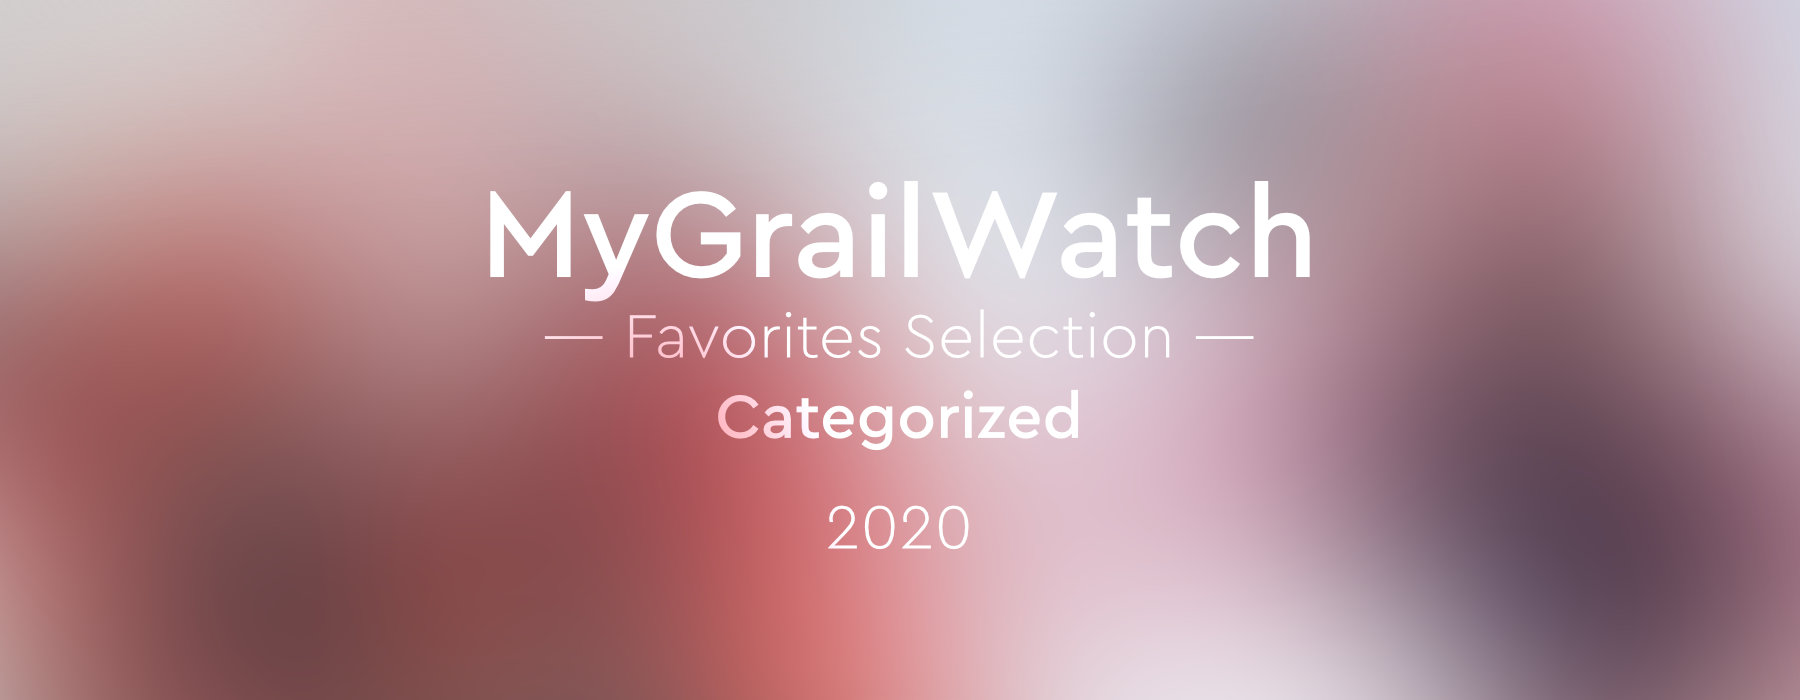 MGW Favorites Selection 2020 Categorized